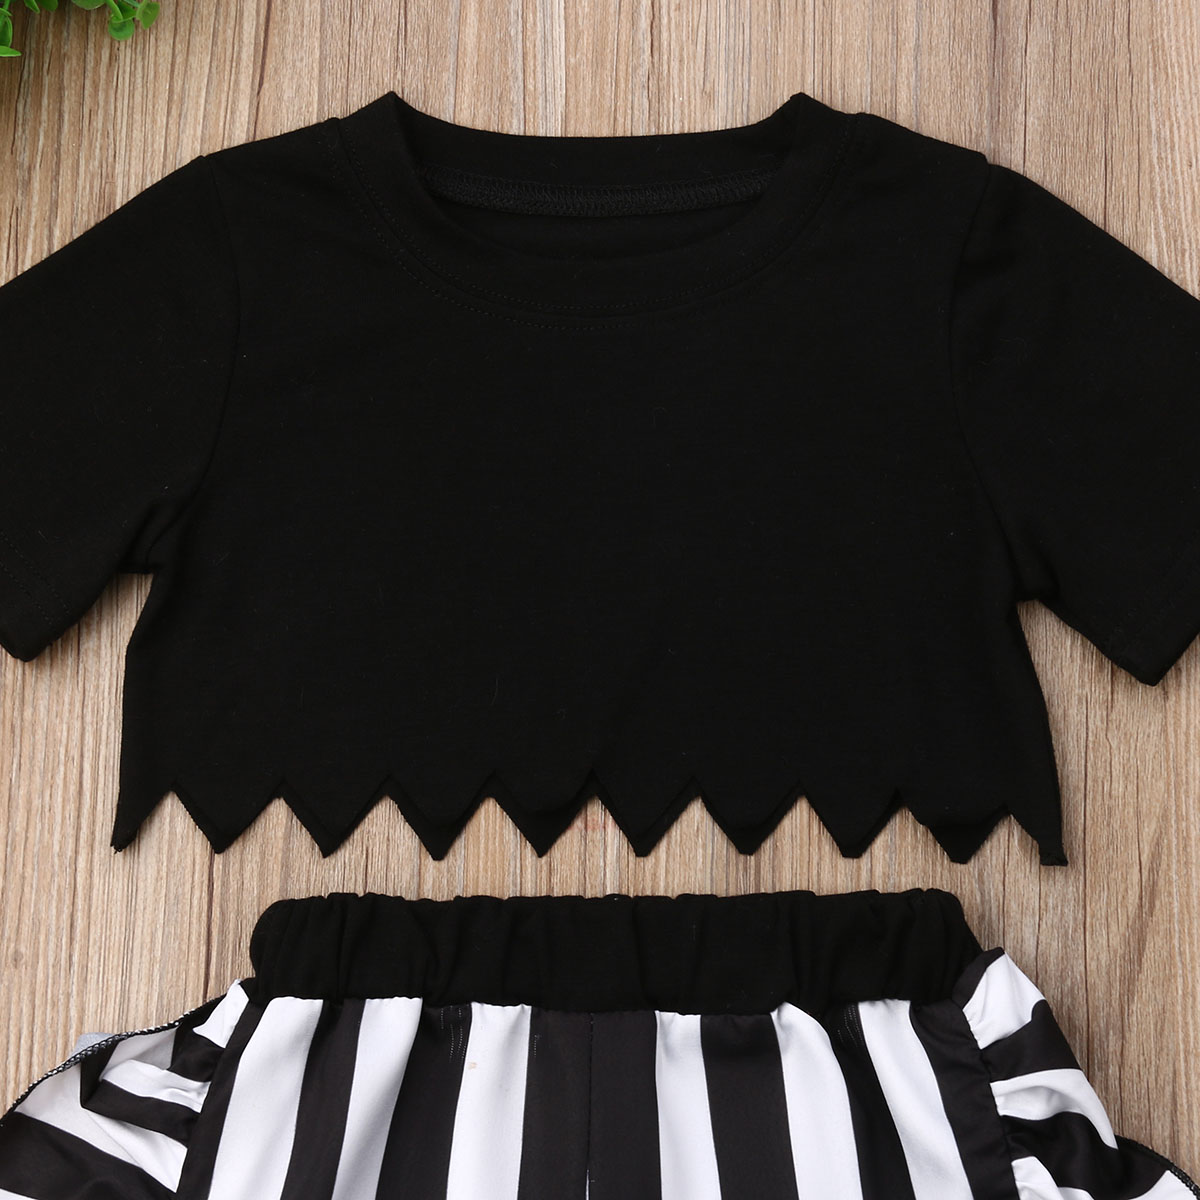 2019 Fashion Kids Baby Girls Clothes Set Black T shirt Black Stripe Ruffle Pants 2Pcs Summer Baby Clothes Toddler Girls Set in Clothing Sets from Mother Kids